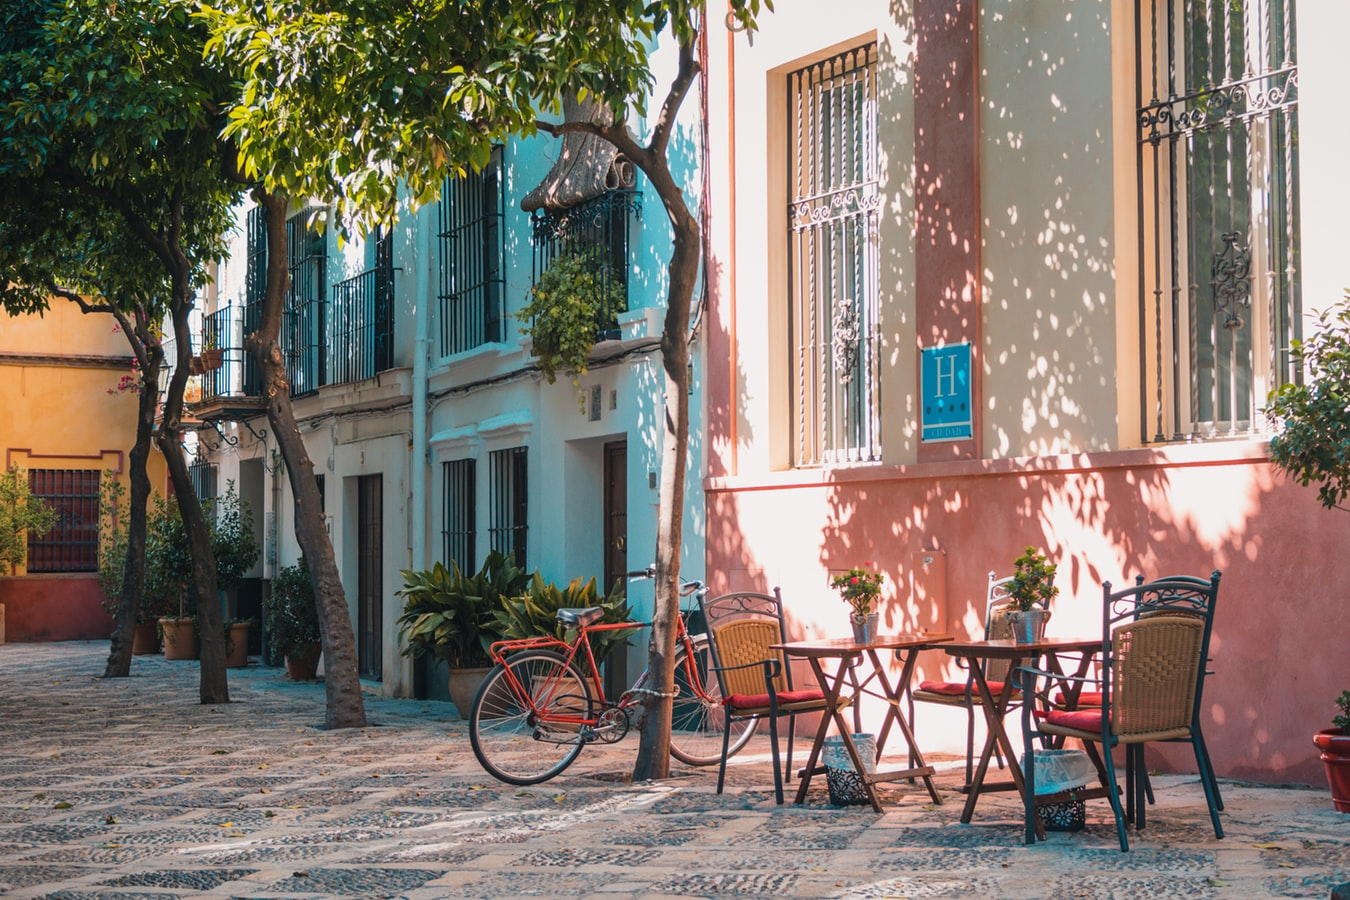 Top 7 Cool And Unusual Things To Do In Spain | Uncustomary